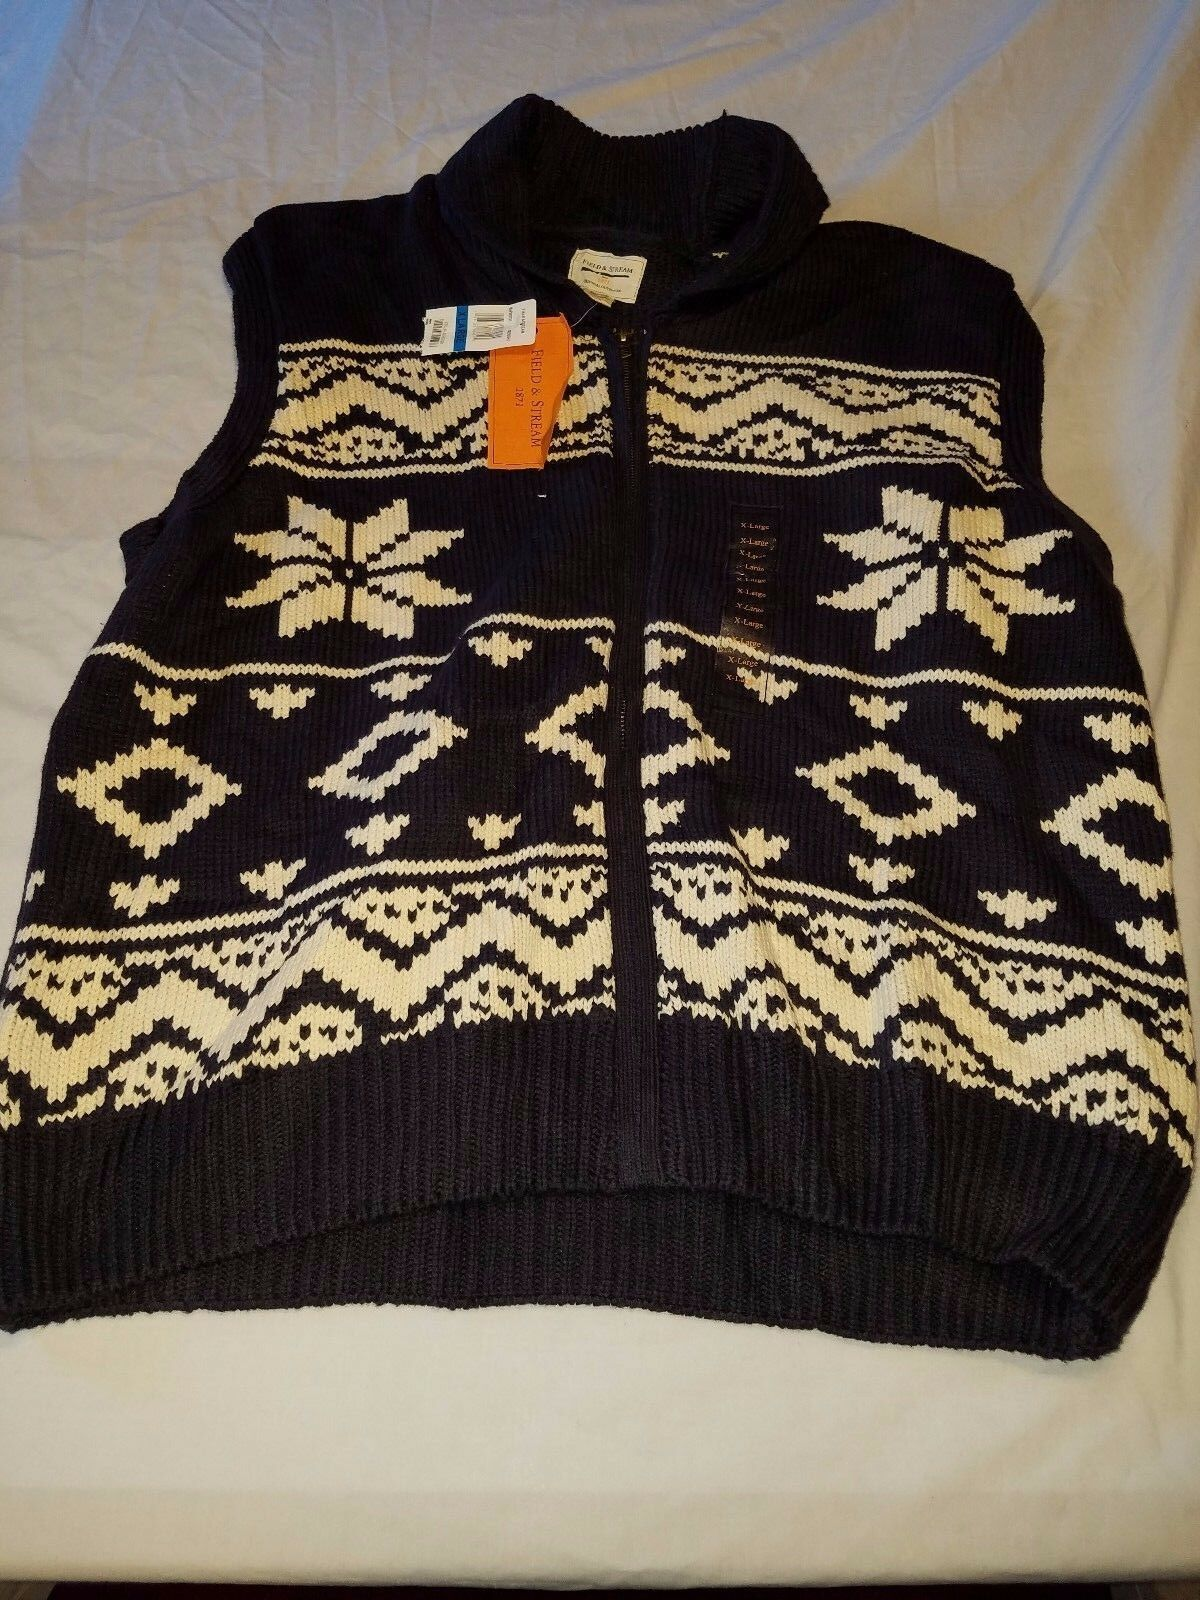 Field & Stream Original Outfitters Men's Sweater Vest Size XL--NWT